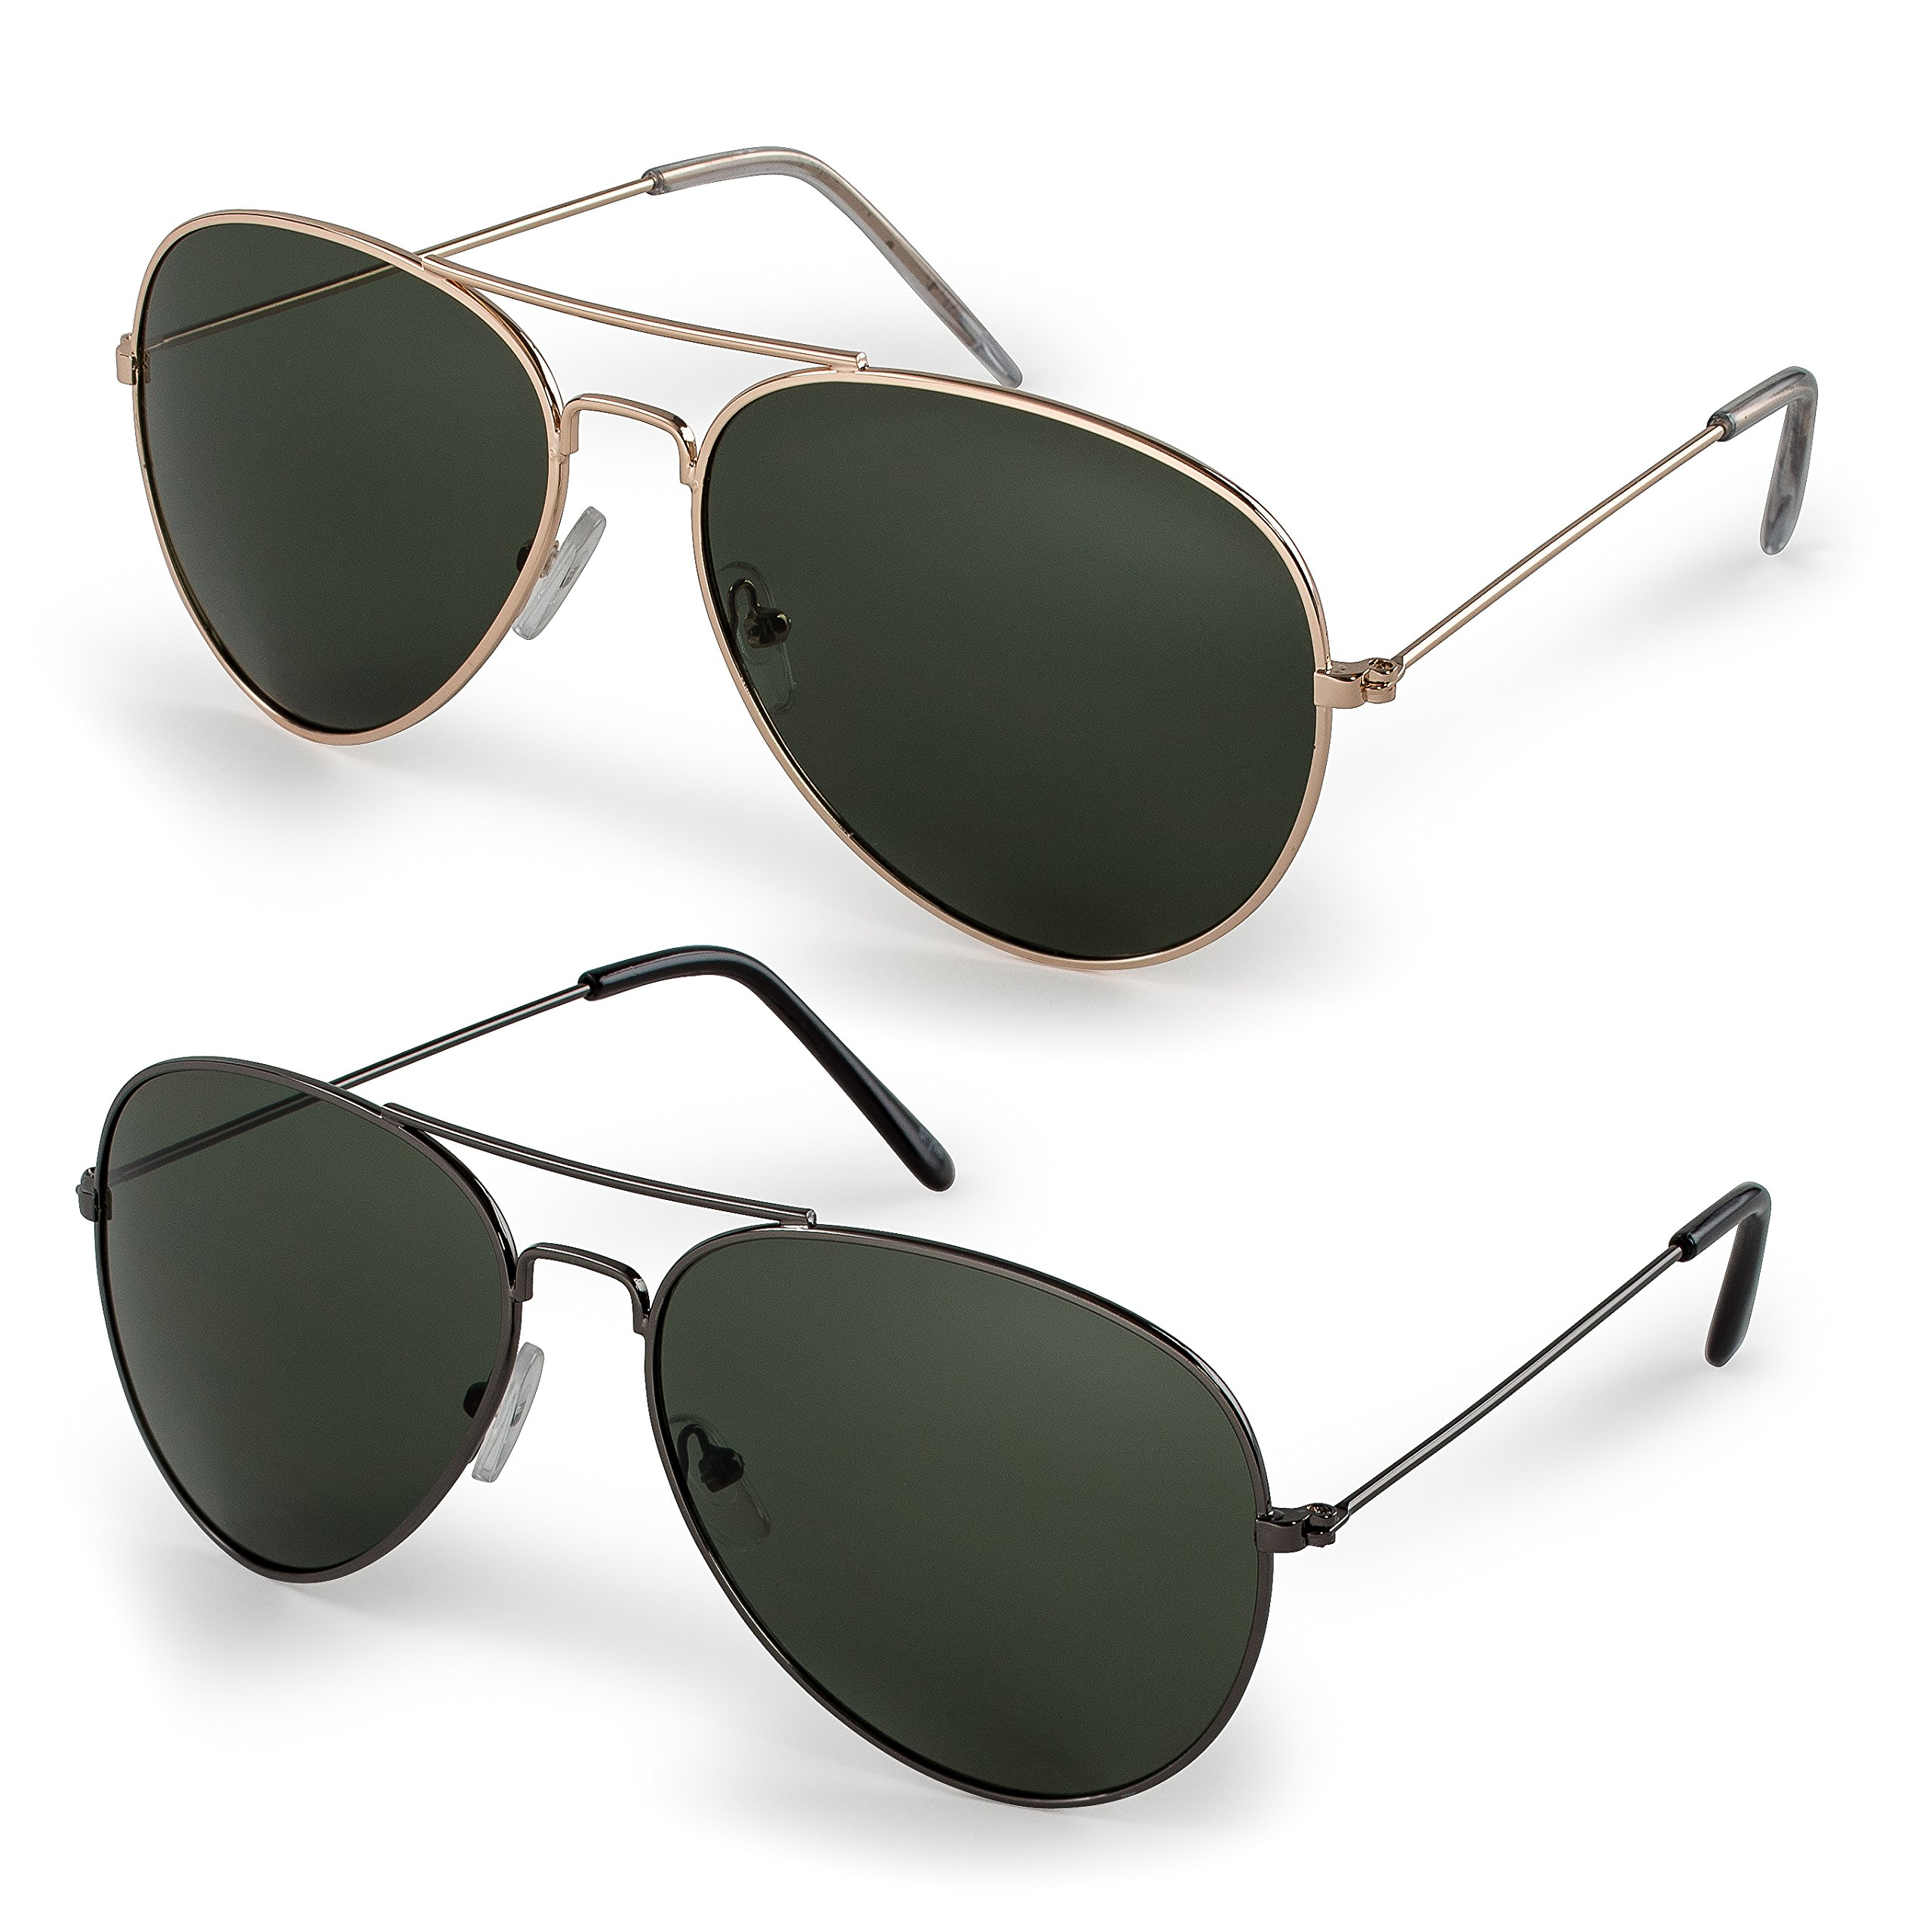 Stylle Classic Aviator Sunglasses with Protective Bag, 100% UV Protection, (2 Pairs) Gold Frame/G15 Lens + Gunmetal/G15 Lens